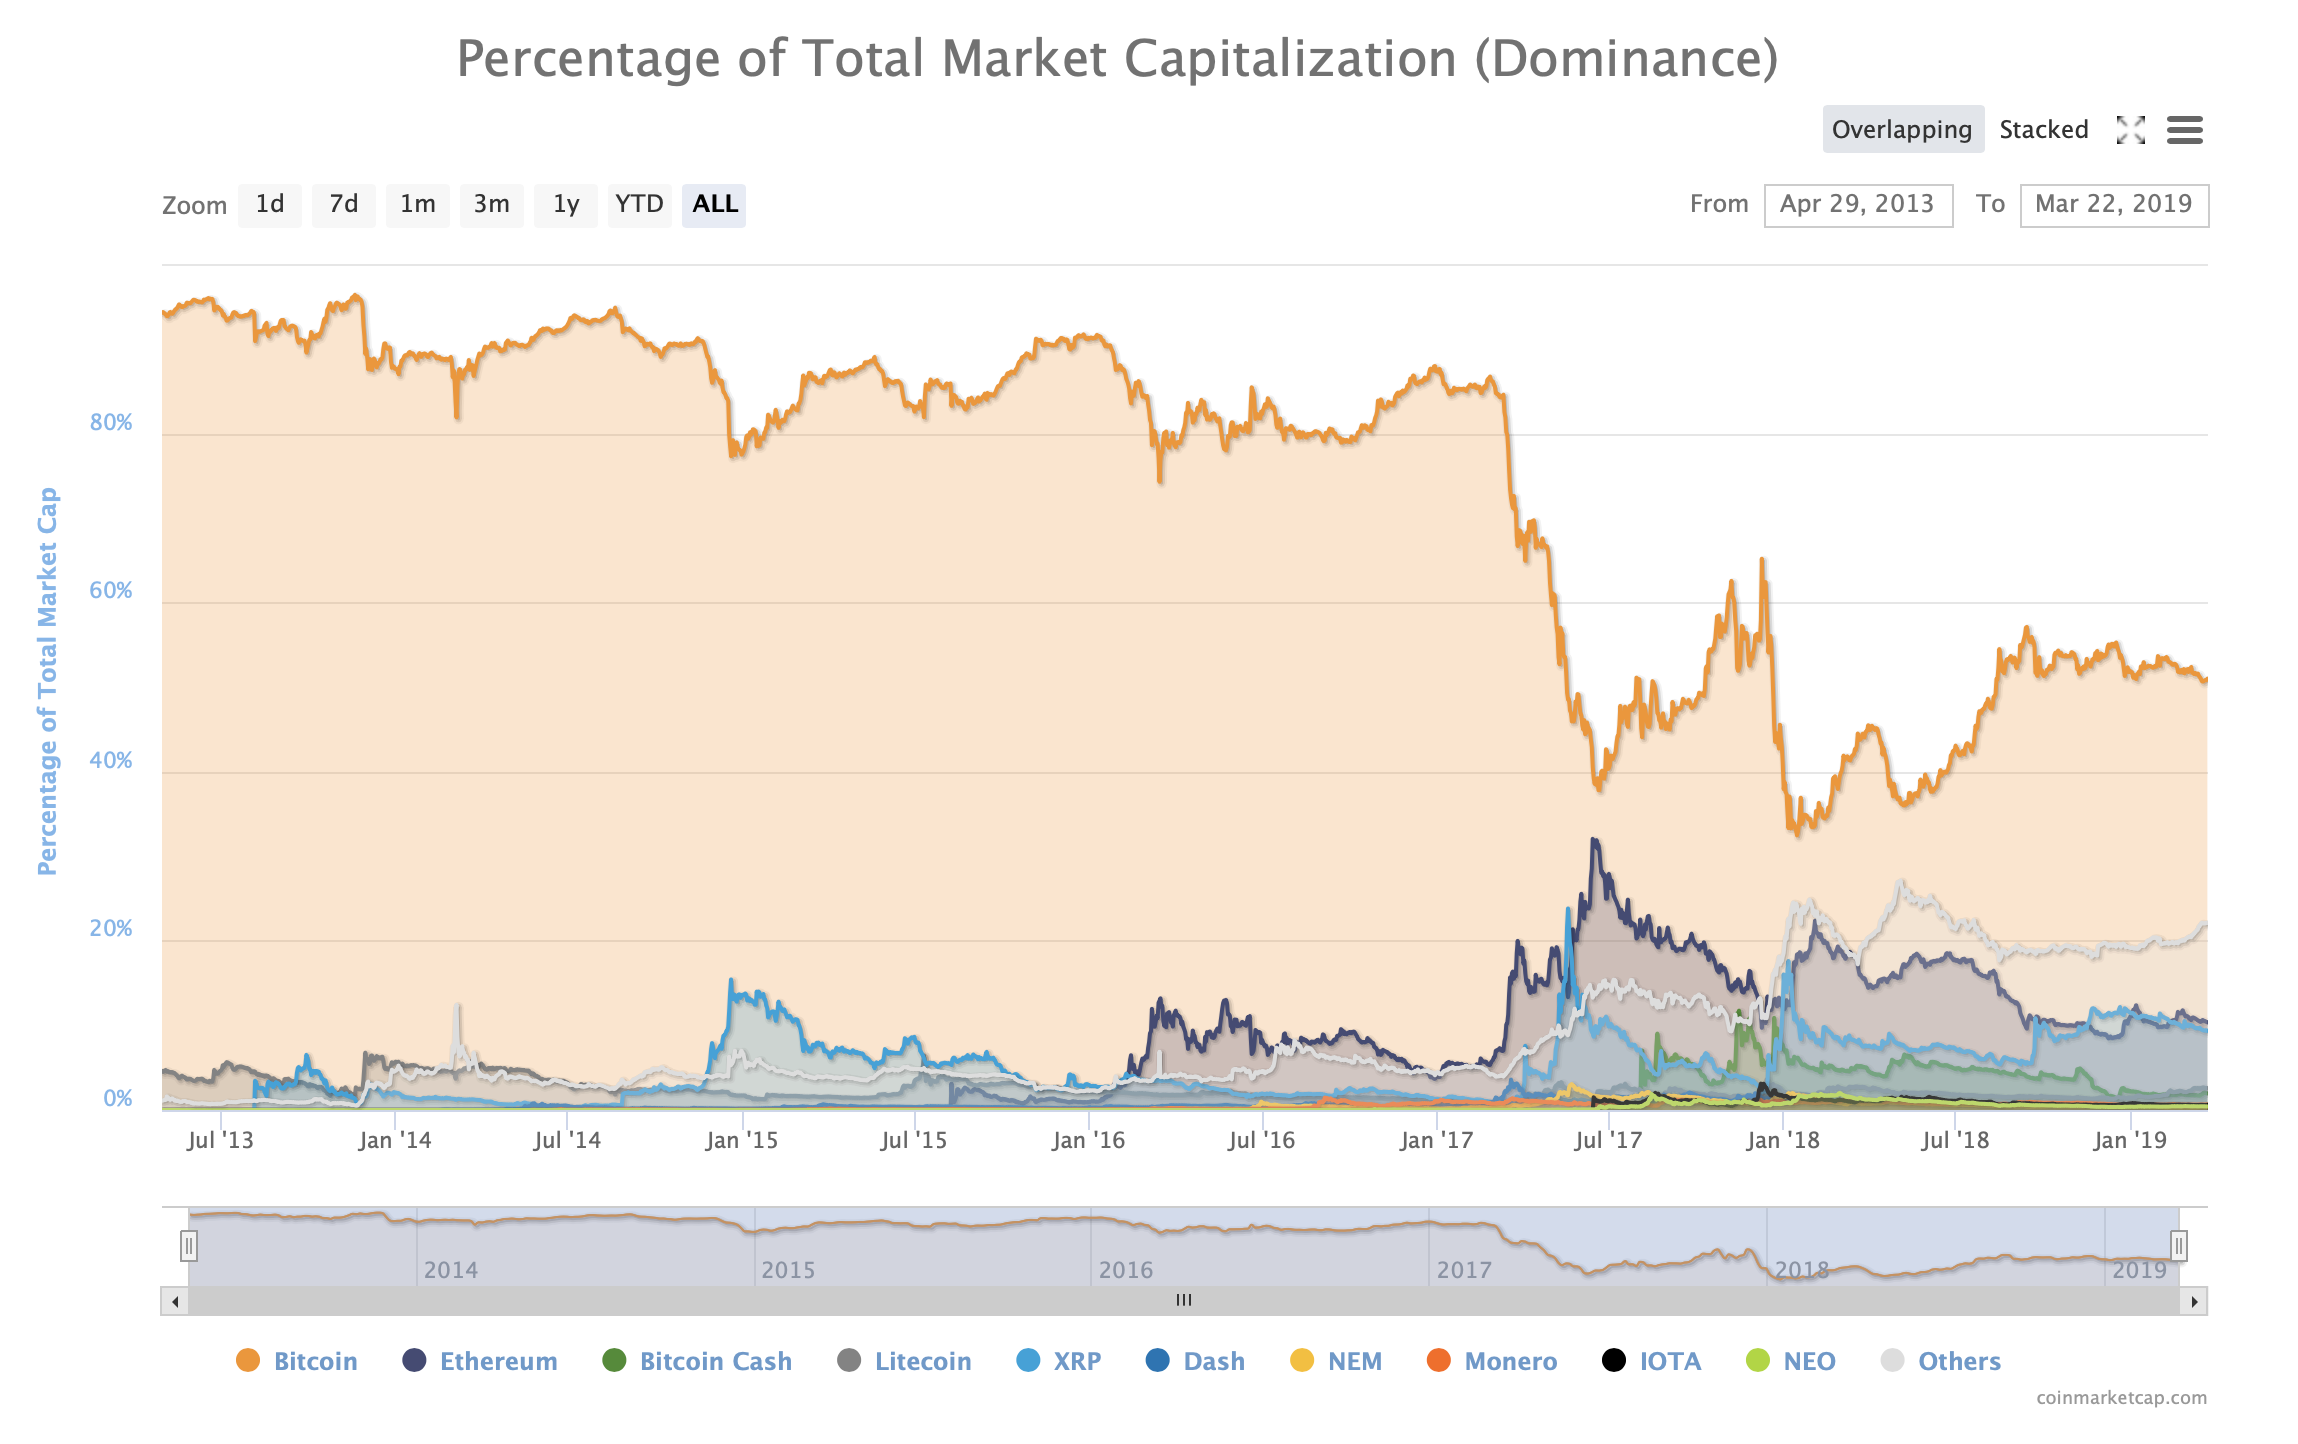 medium.com - John-Paul Thorbjornsen ⚡️ - Bitcoin's Market Dominance